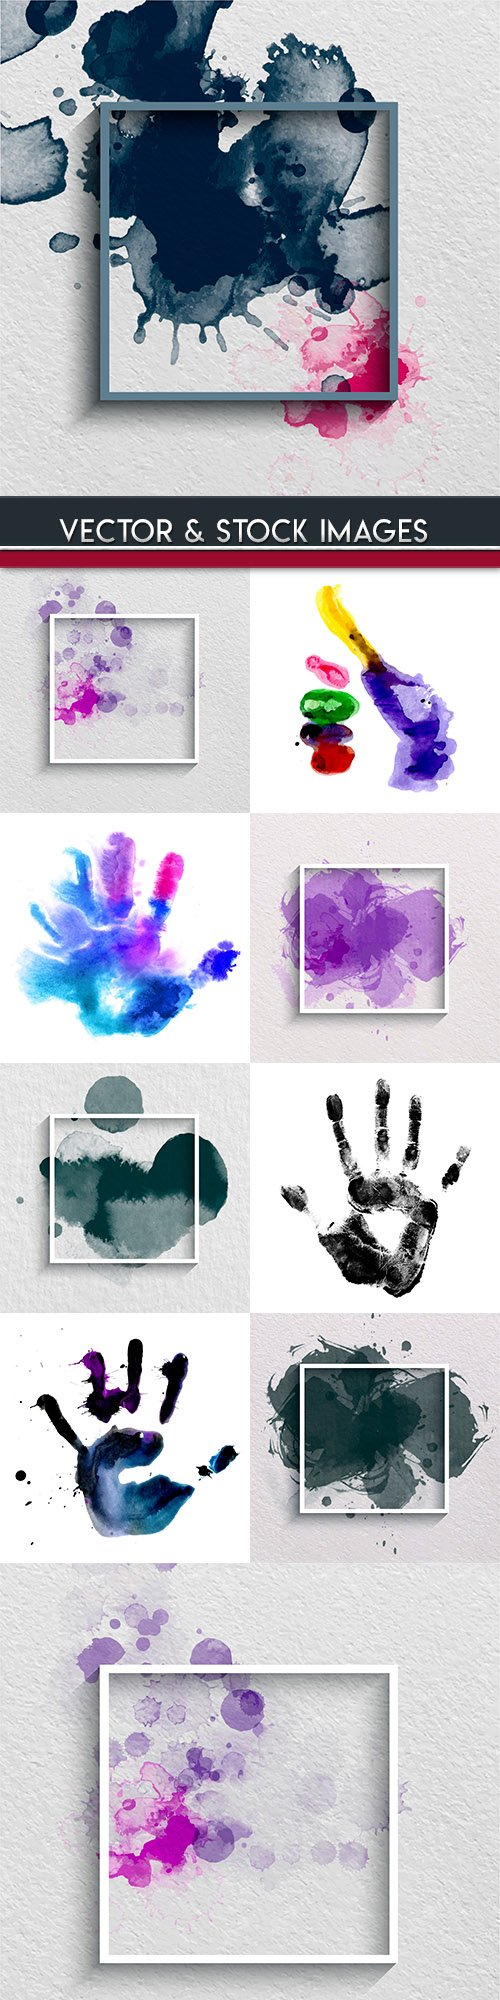 Watercolor splashes and prints hands banner design